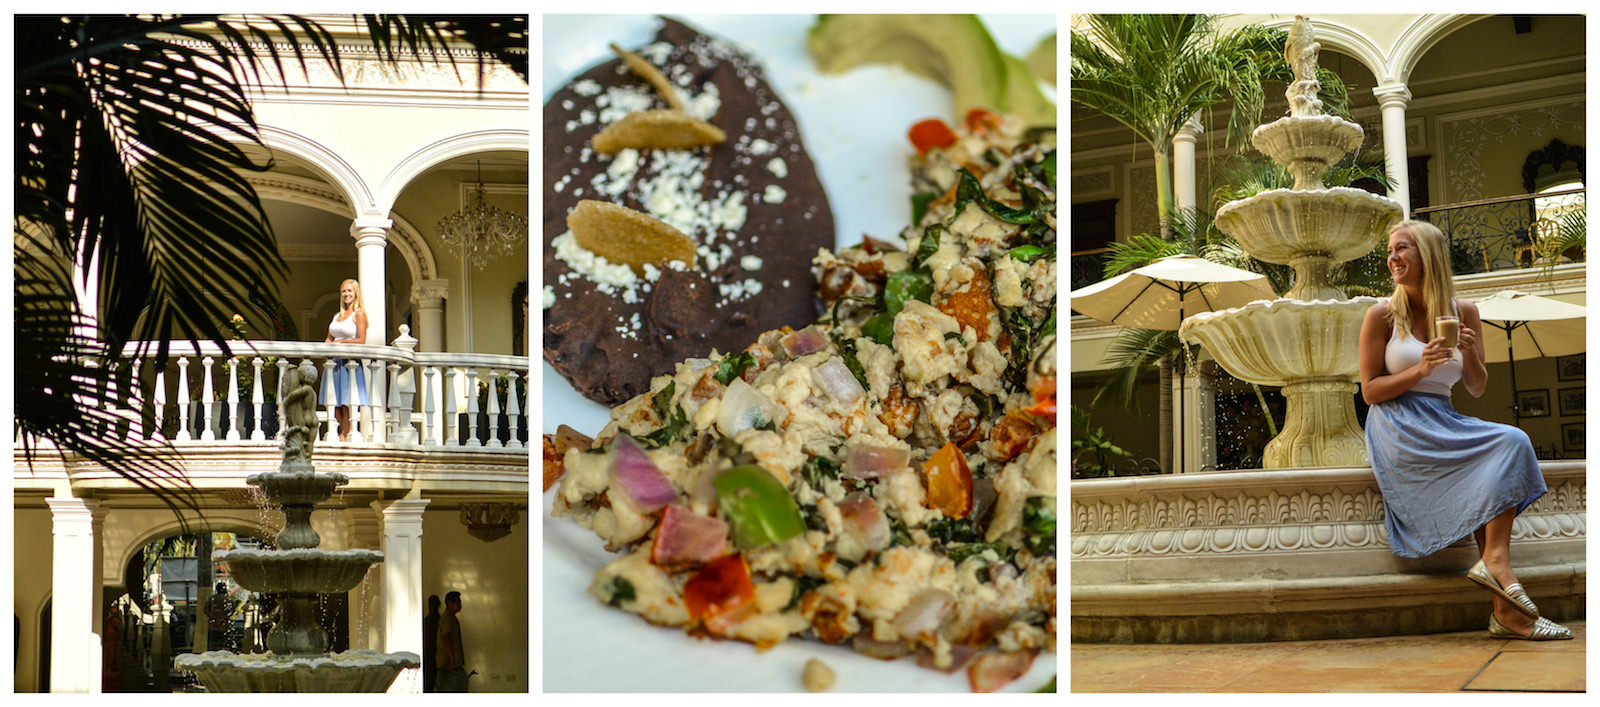 Mansion Merida Mexico Vegetarian Food